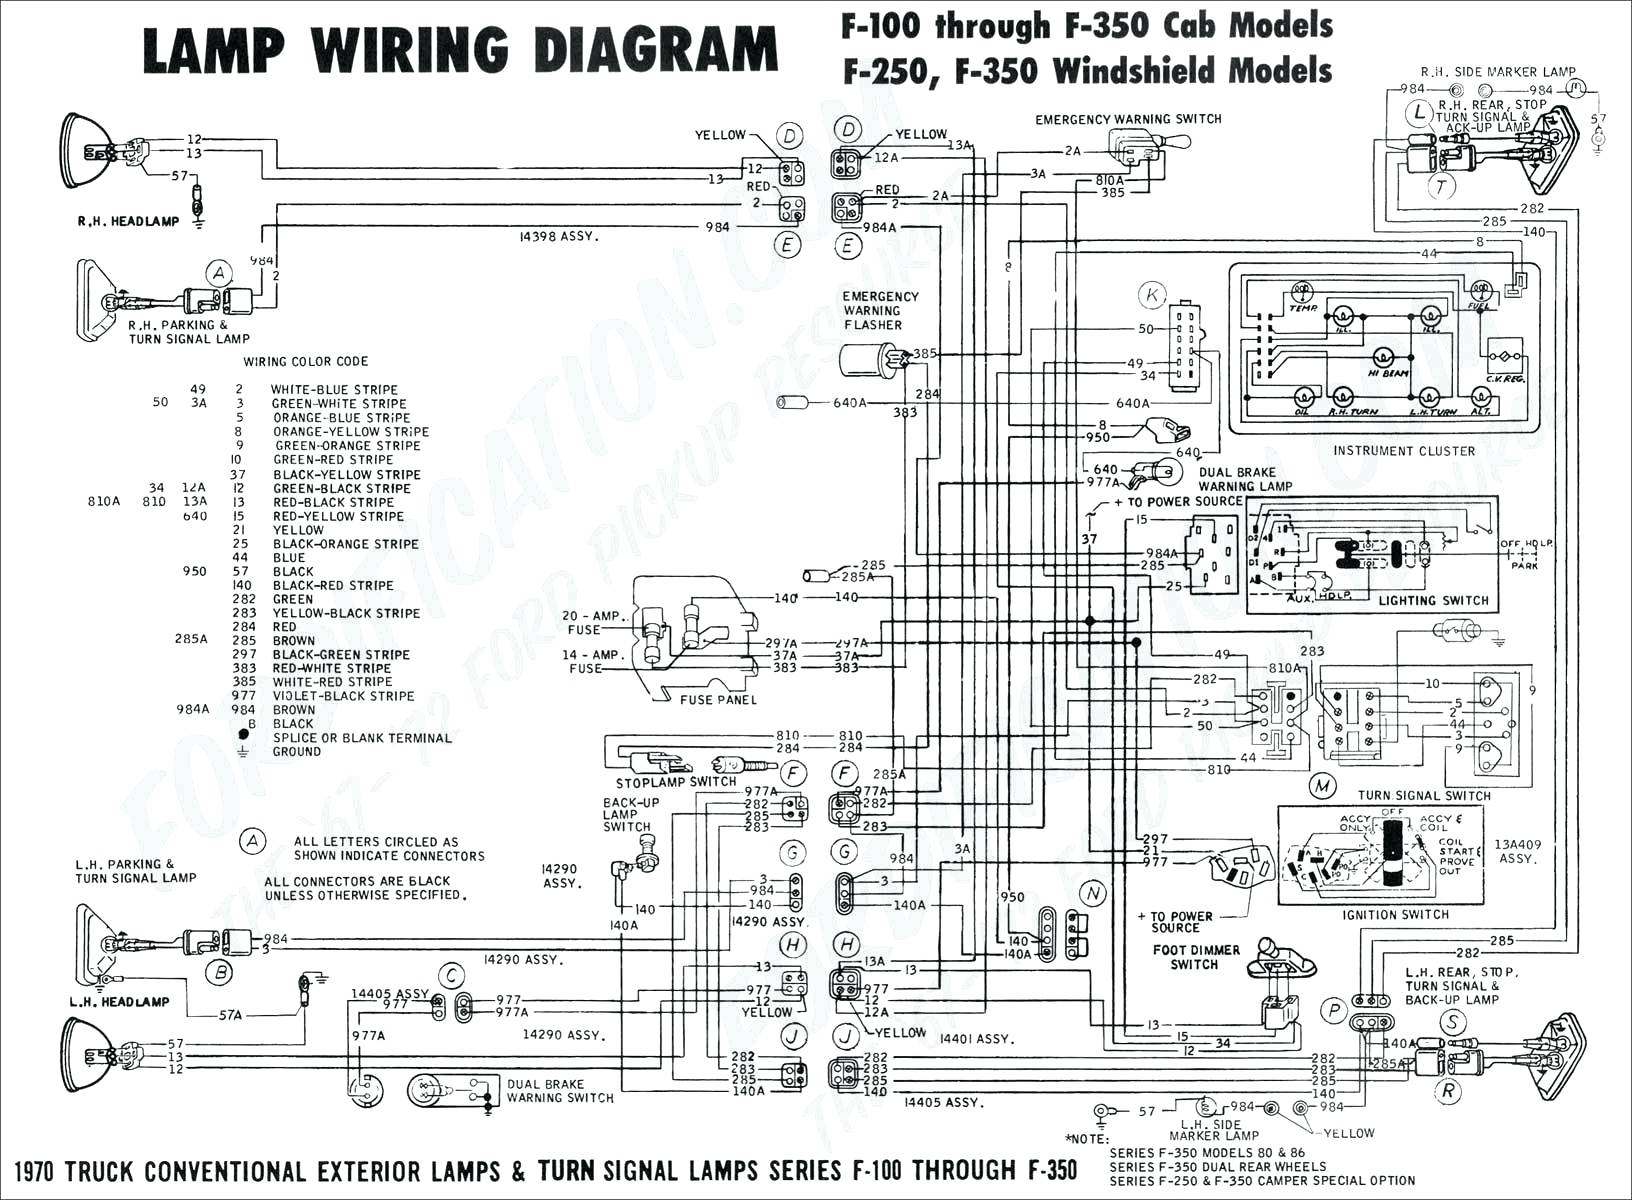 1998 chevy 1500 wiring harness 2003 chevy suburban wiring diagram | free wiring diagram